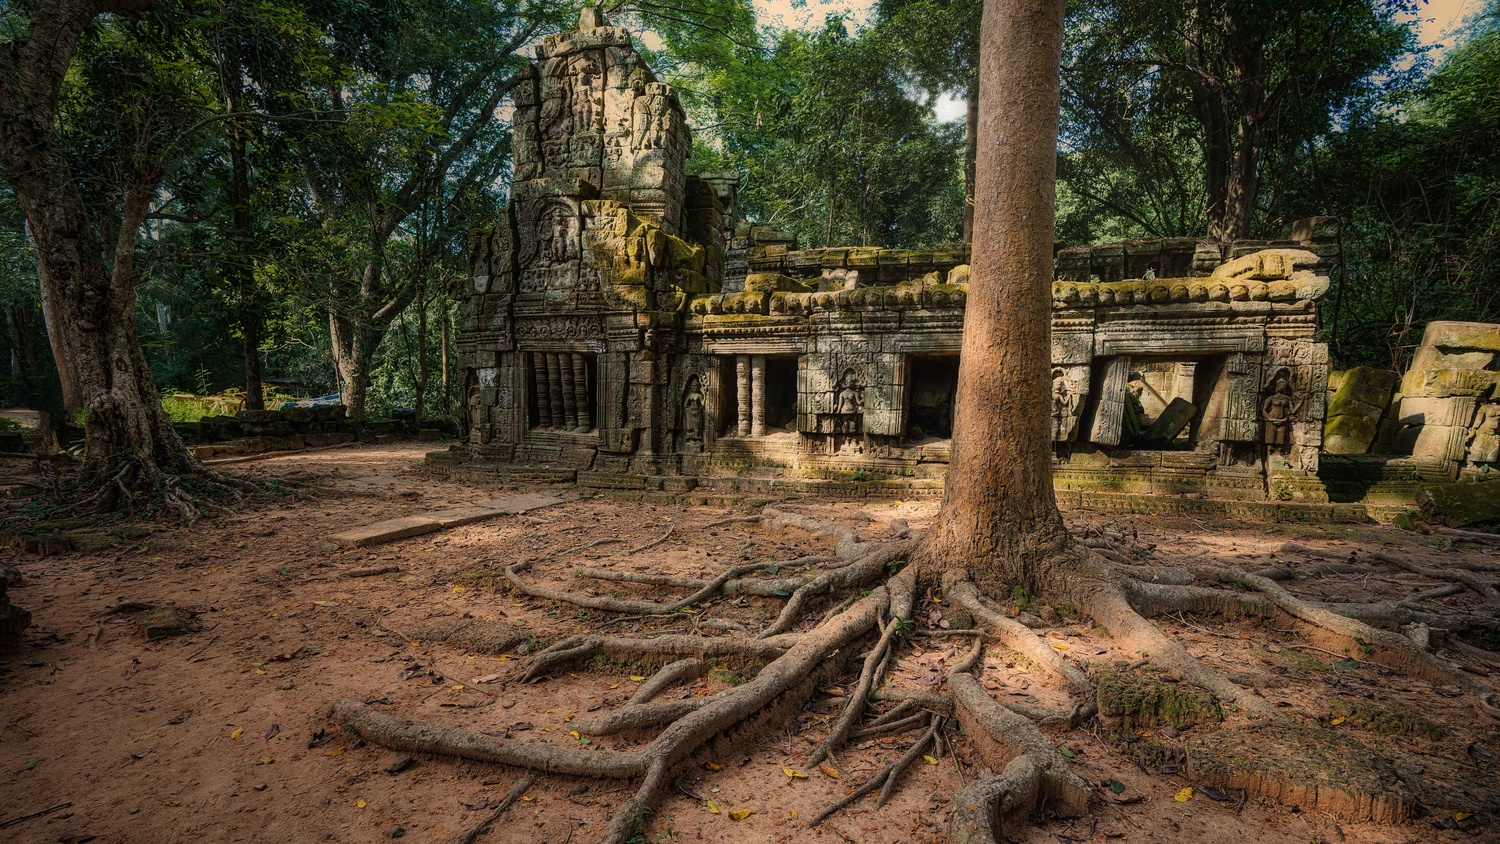 Roots in Siem Reap by Dayne Farley